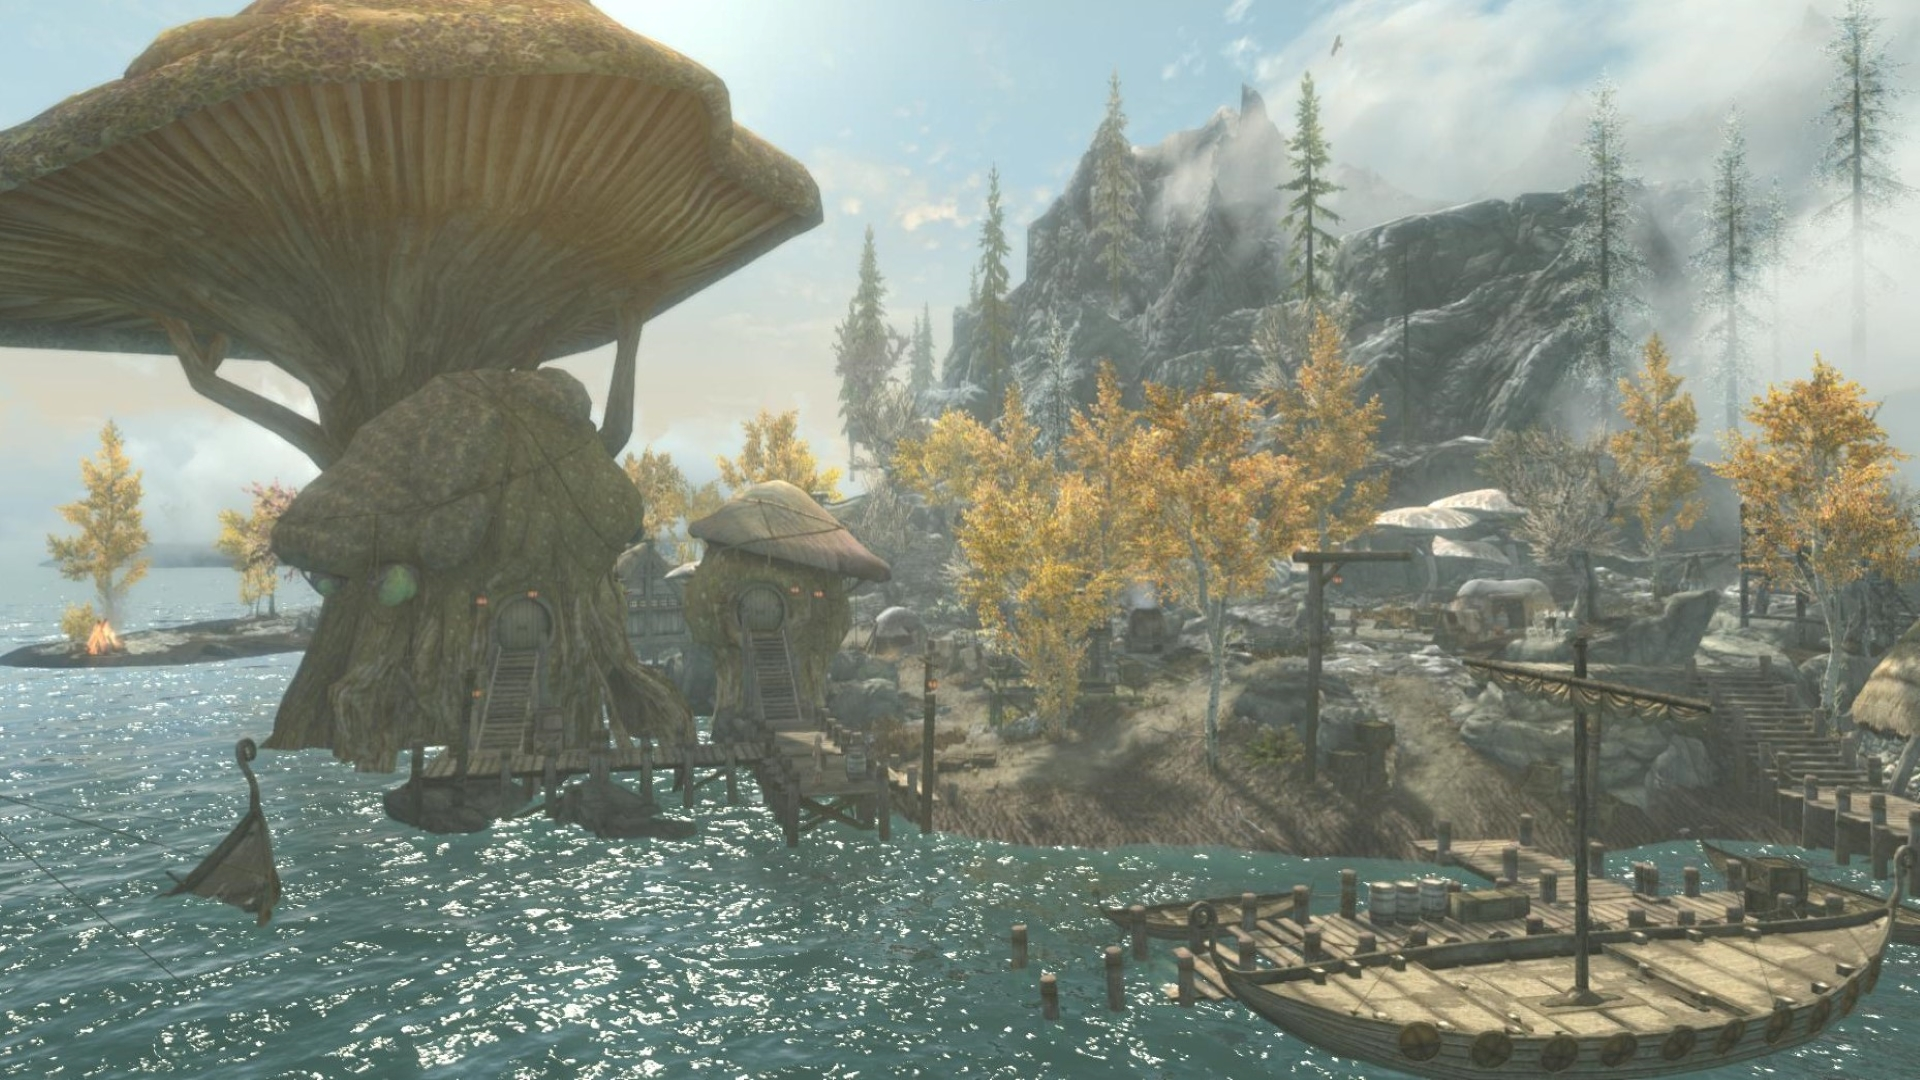 This Skyrim mod adds a new land inspired by The Witcher 3